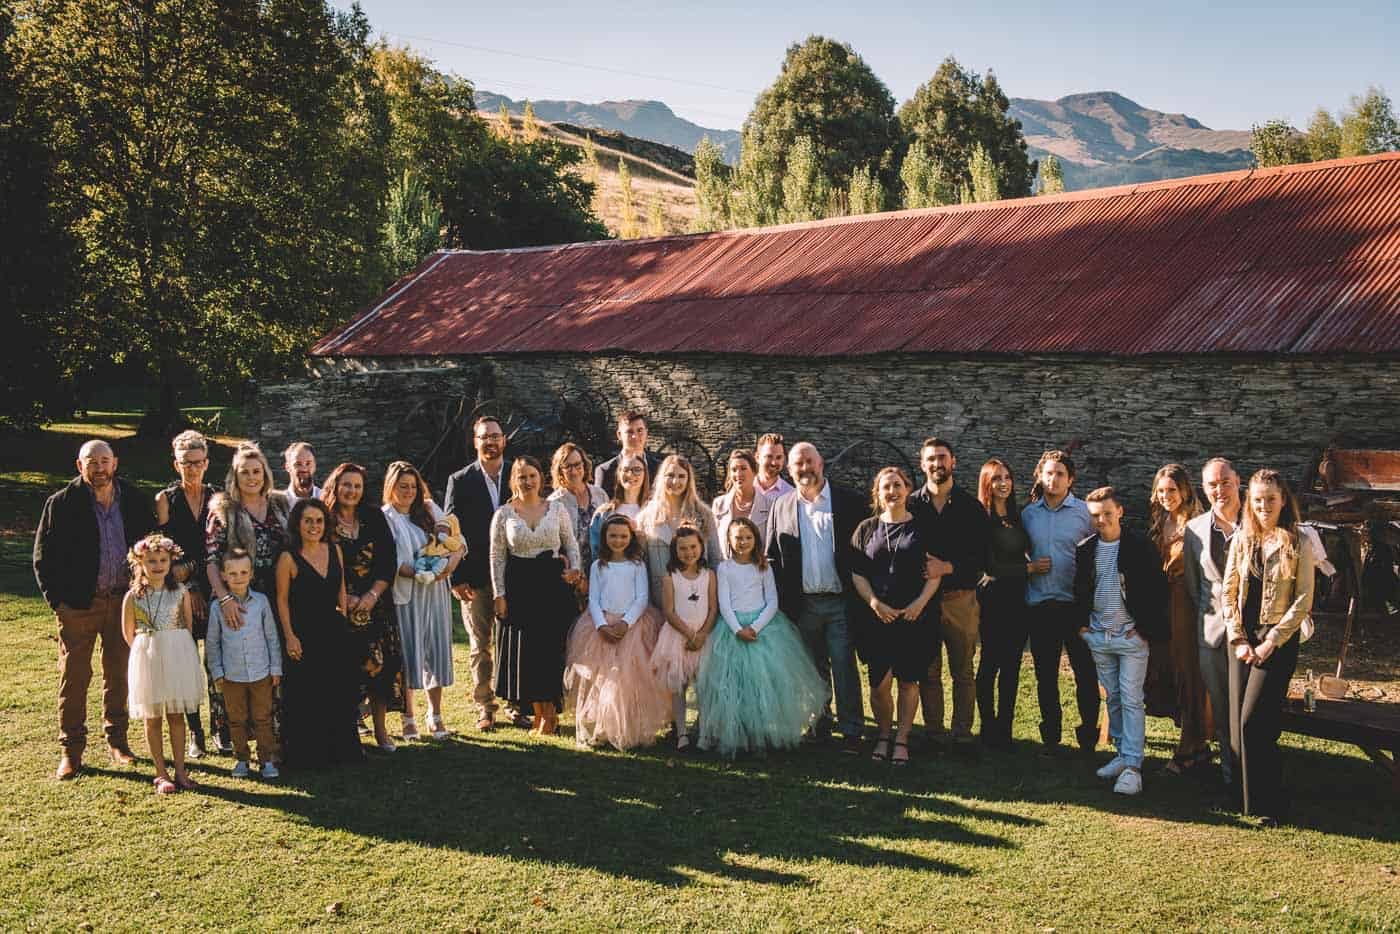 Sam & Kirk's Thurlby Domain Elopement - ceremony in the old stone stables group photo of wedding party